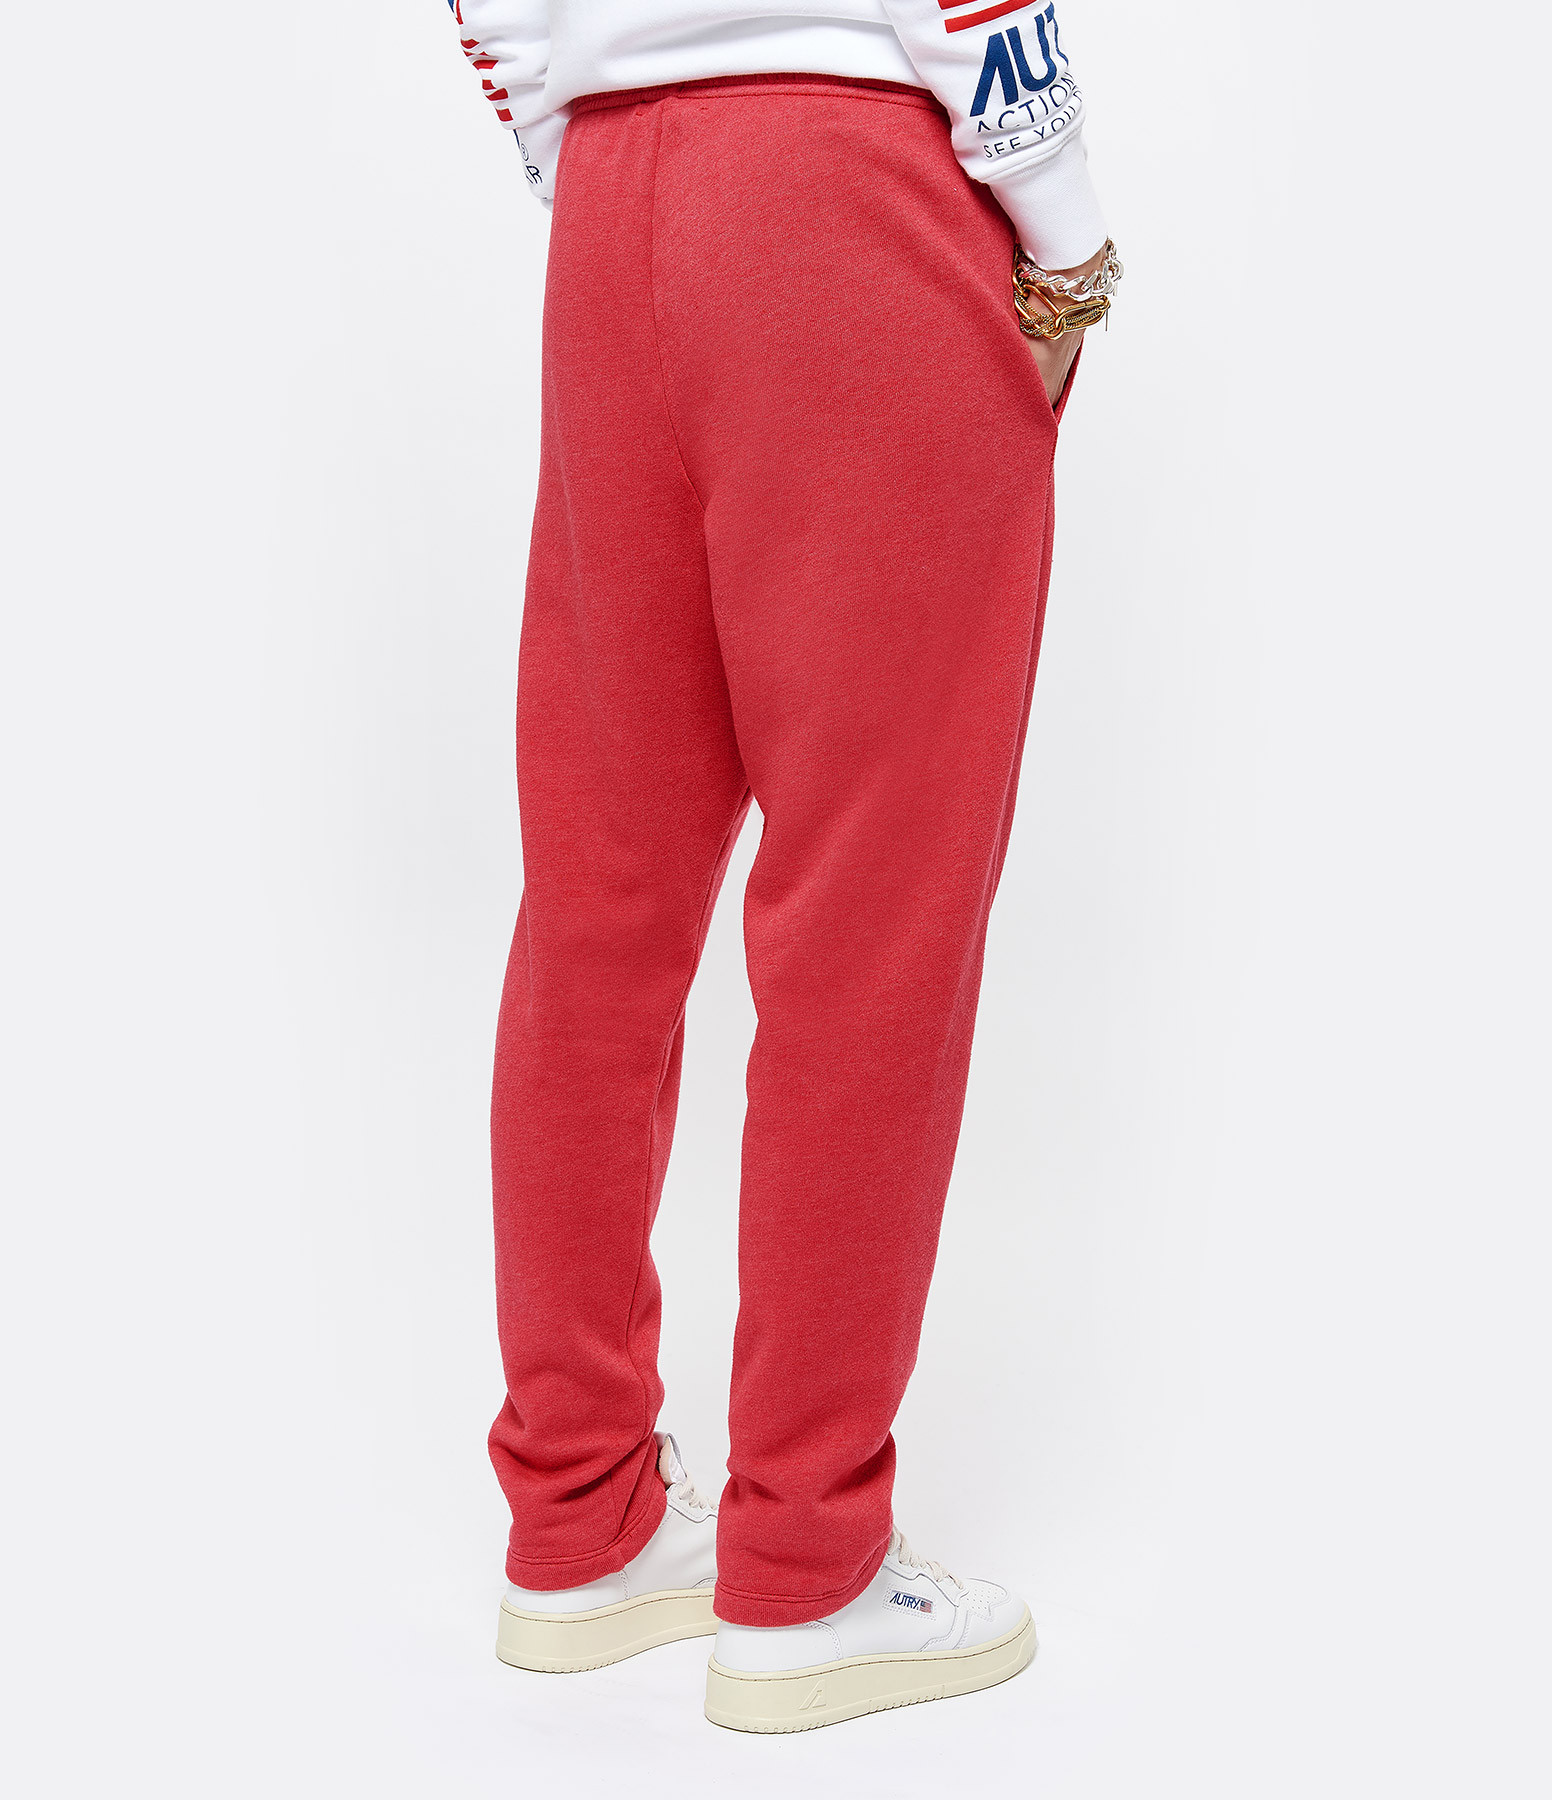 XIRENA - Jogging Crosby Coton Rouge